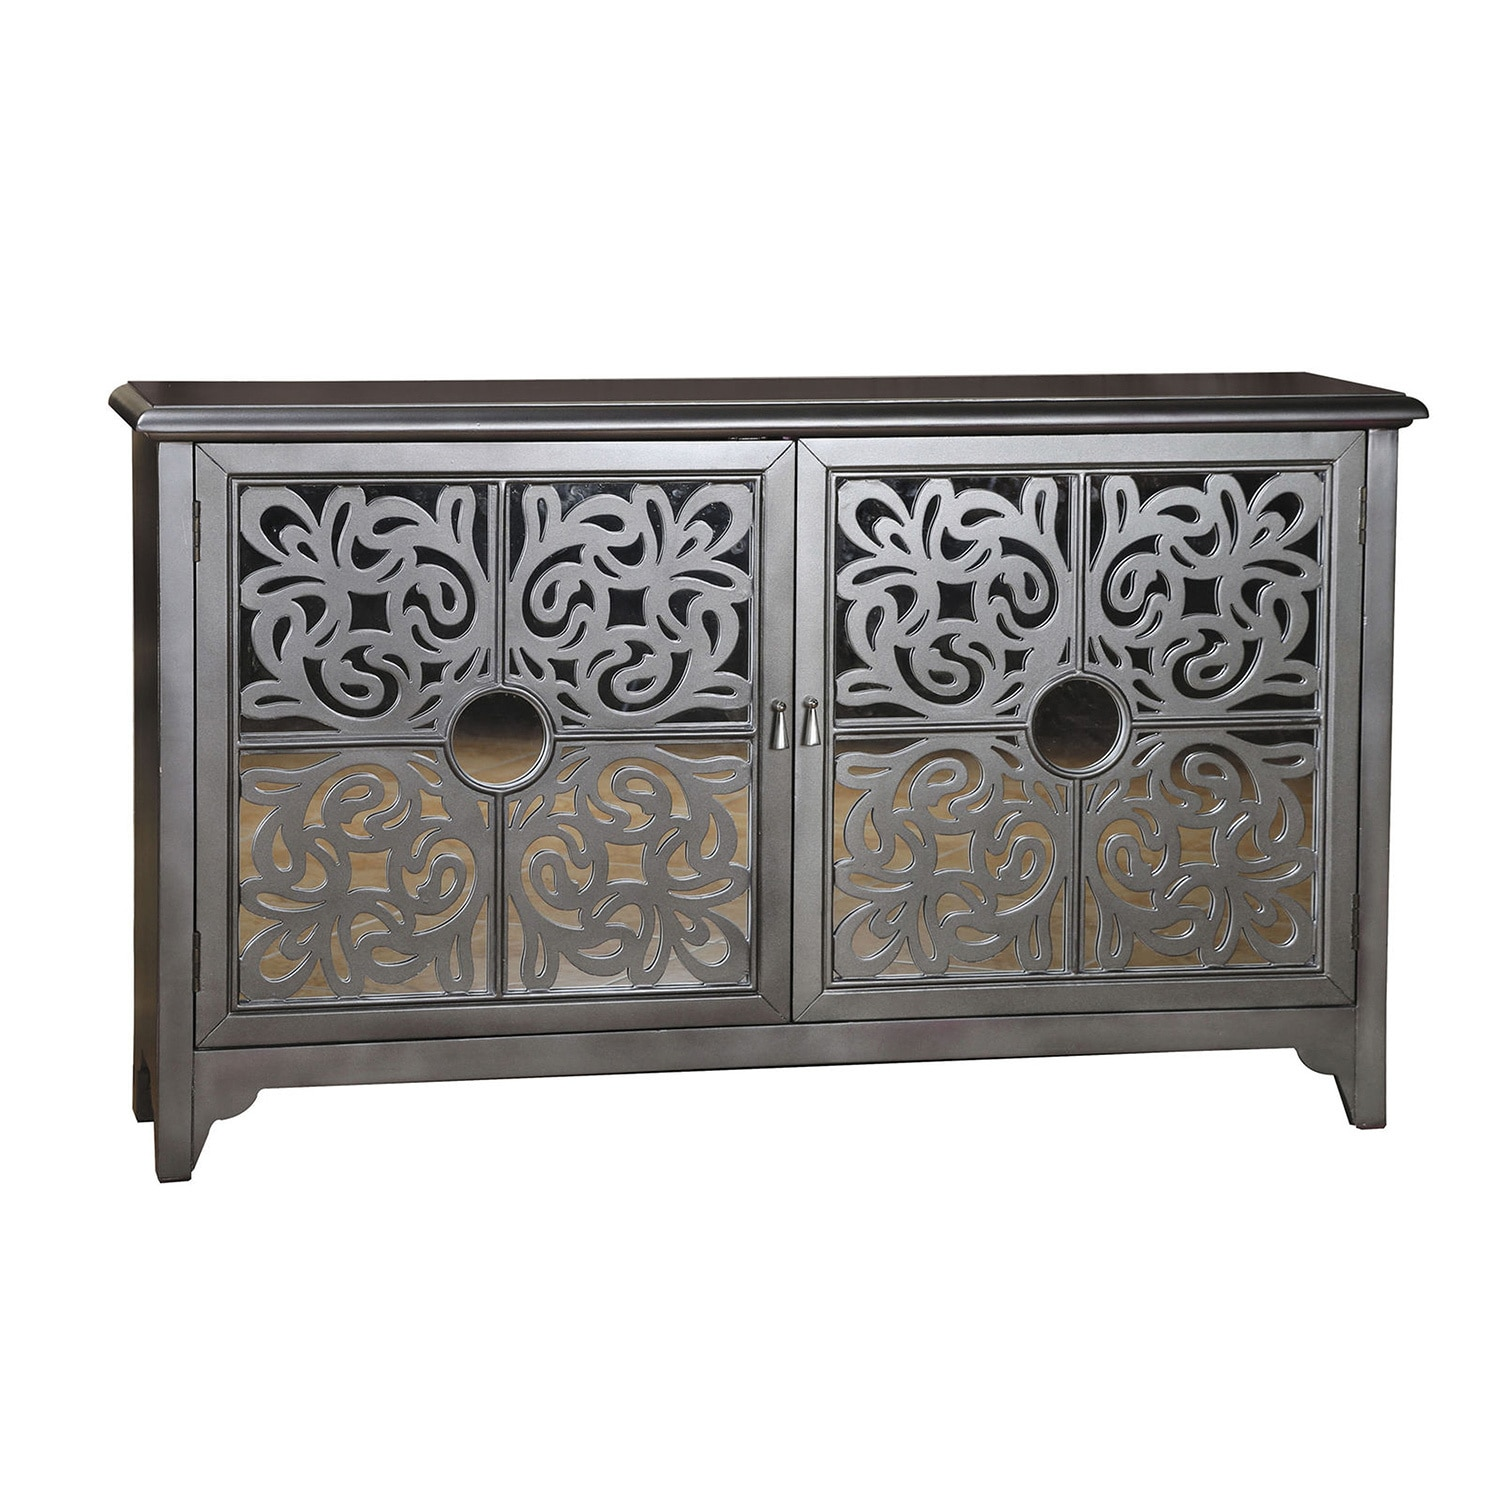 Hand Painted Distressed Silver Finish Credenza with Mirro...